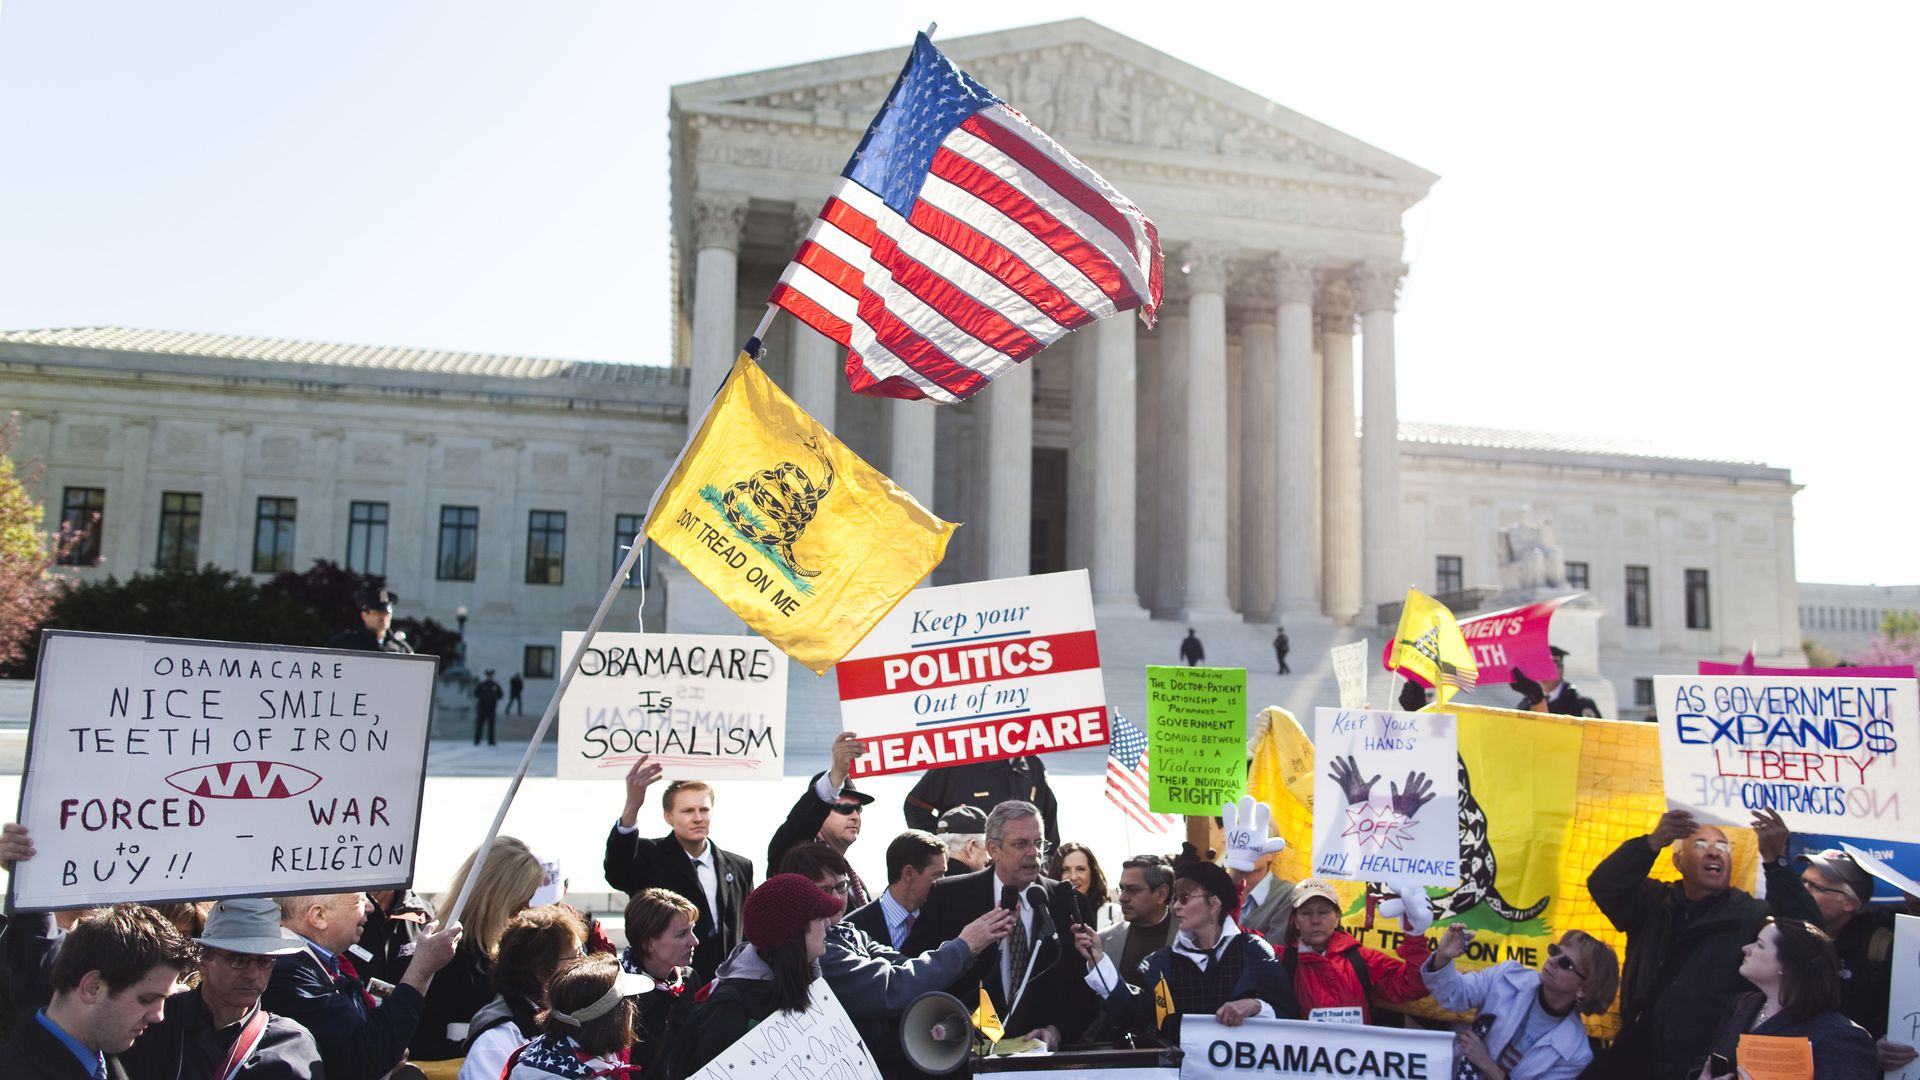 Protesters rally against the Affordable Care Act outside the Supreme Court in 2012